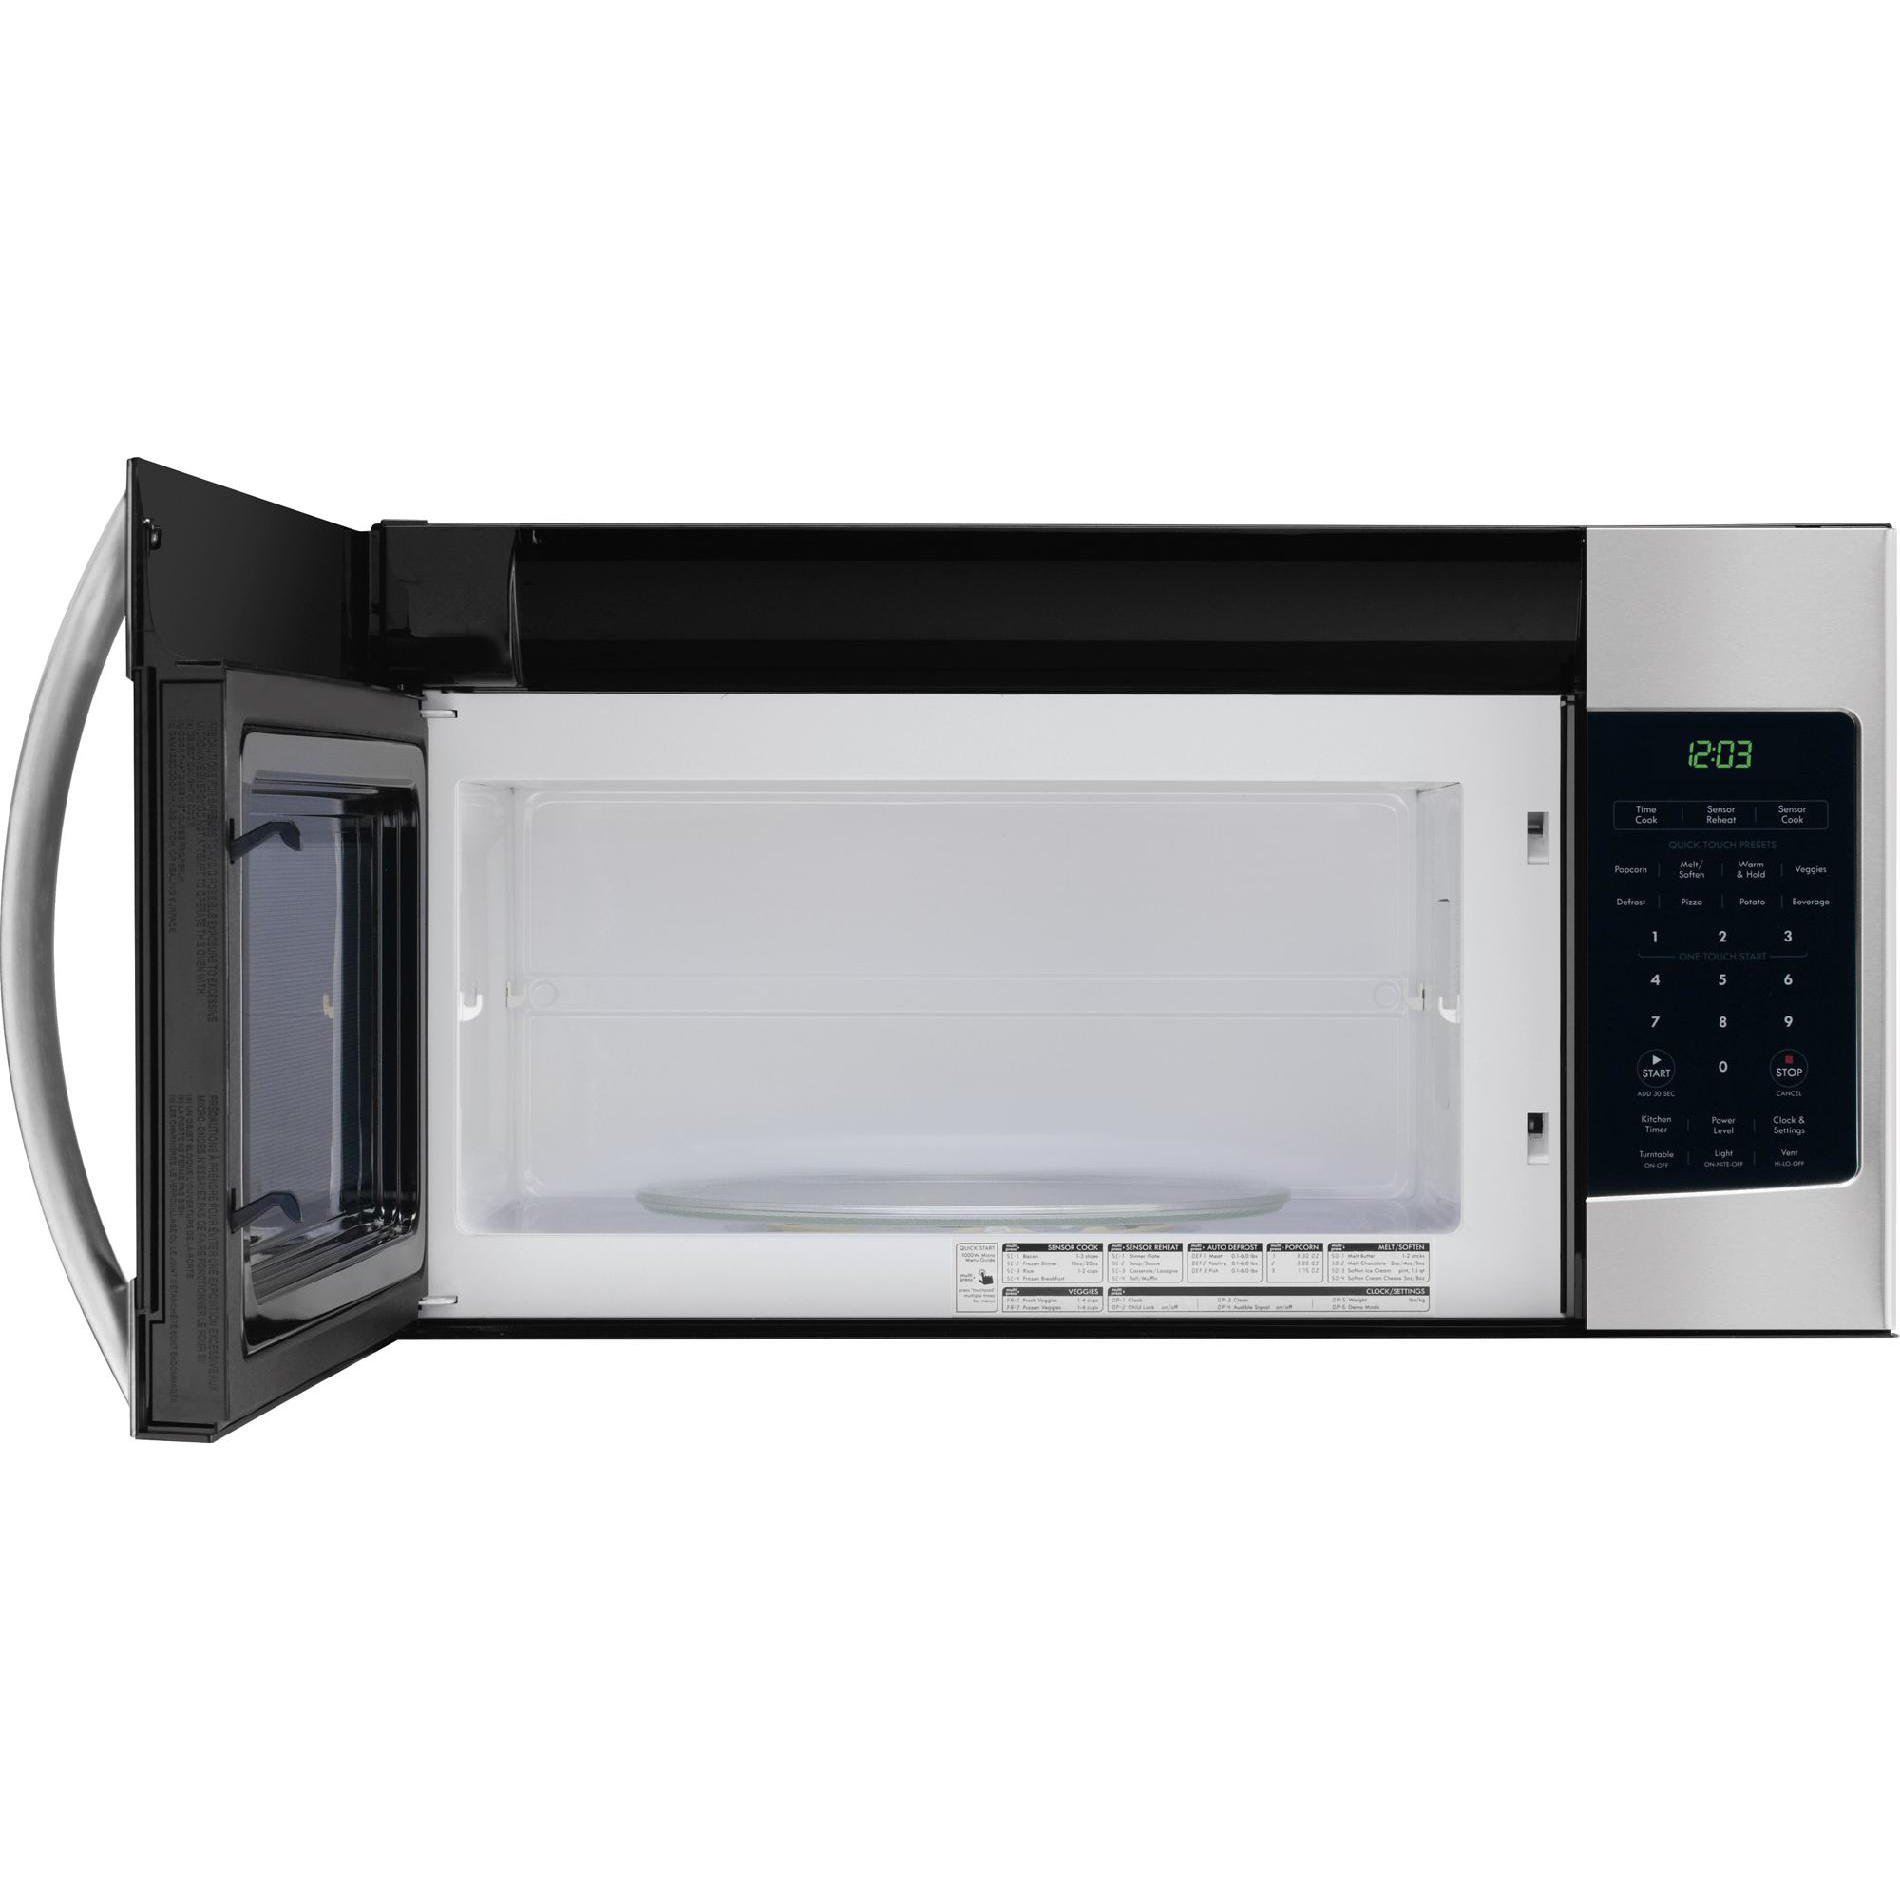 Kenmore 80333 1.7 cu. ft. Over-the-Range Microwave - Stainless Steel